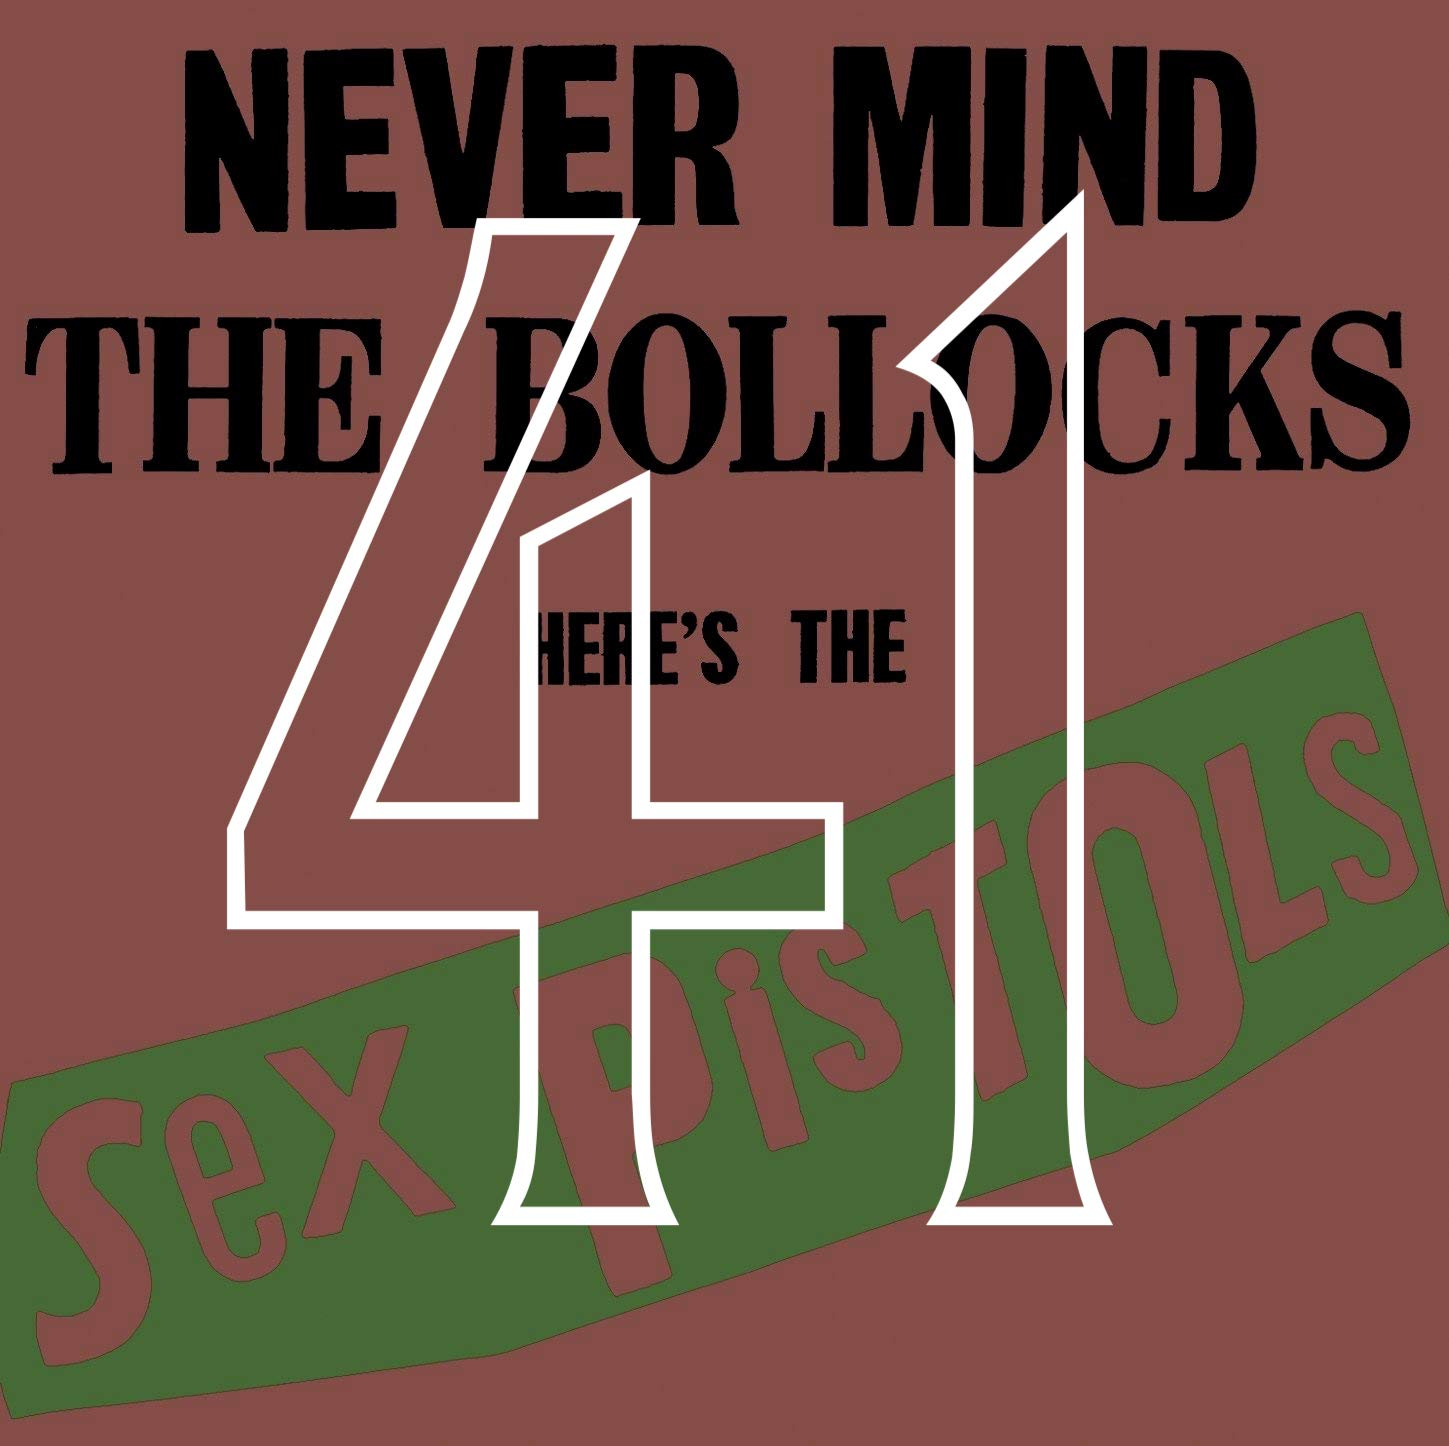 41 Never Mind the Bollocks.jpg